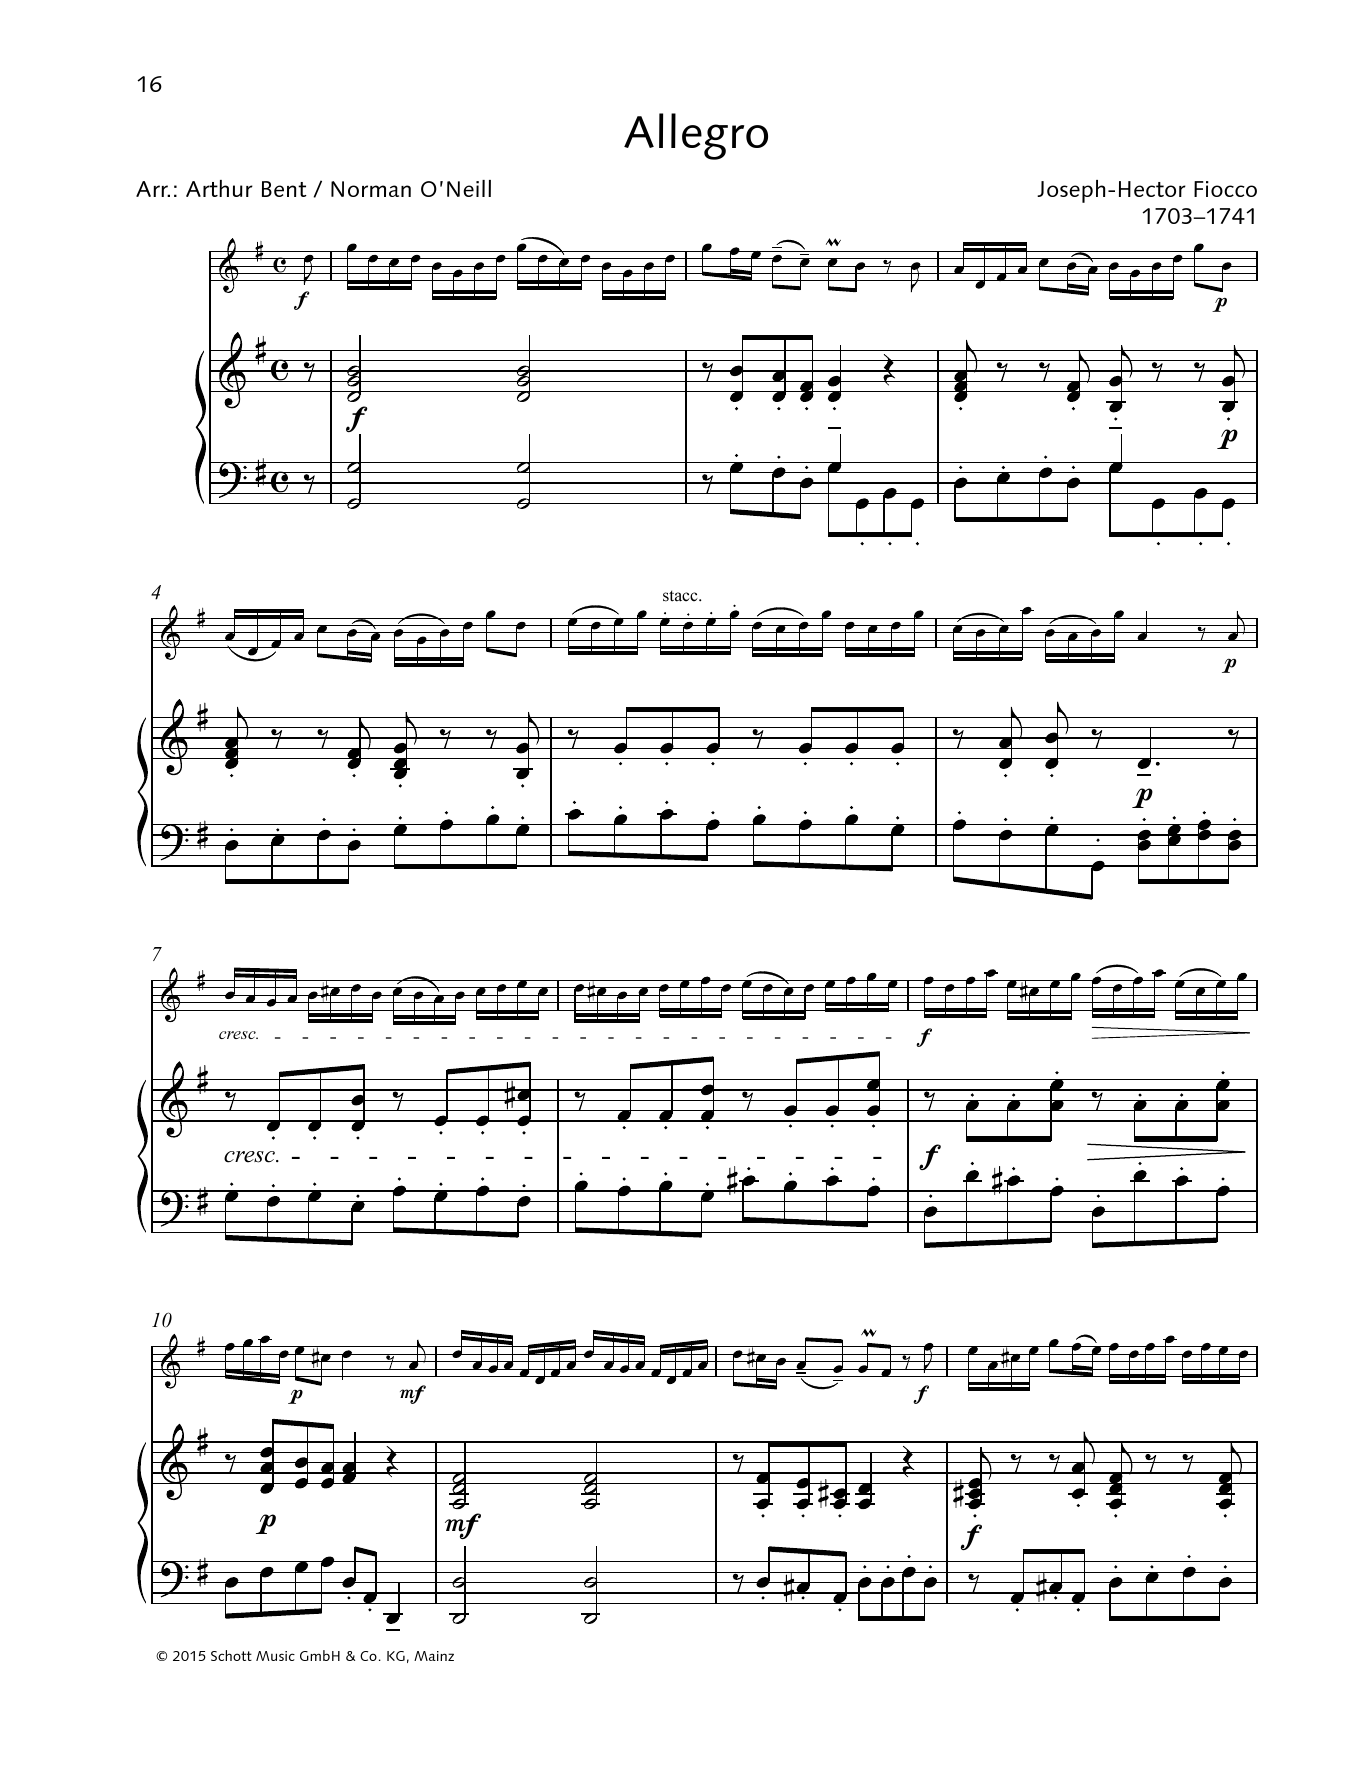 Joseph Hector Fiocco Allegro Sheet Music Pdf Notes Chords Classical Score String Solo Download Printable Sku 363171